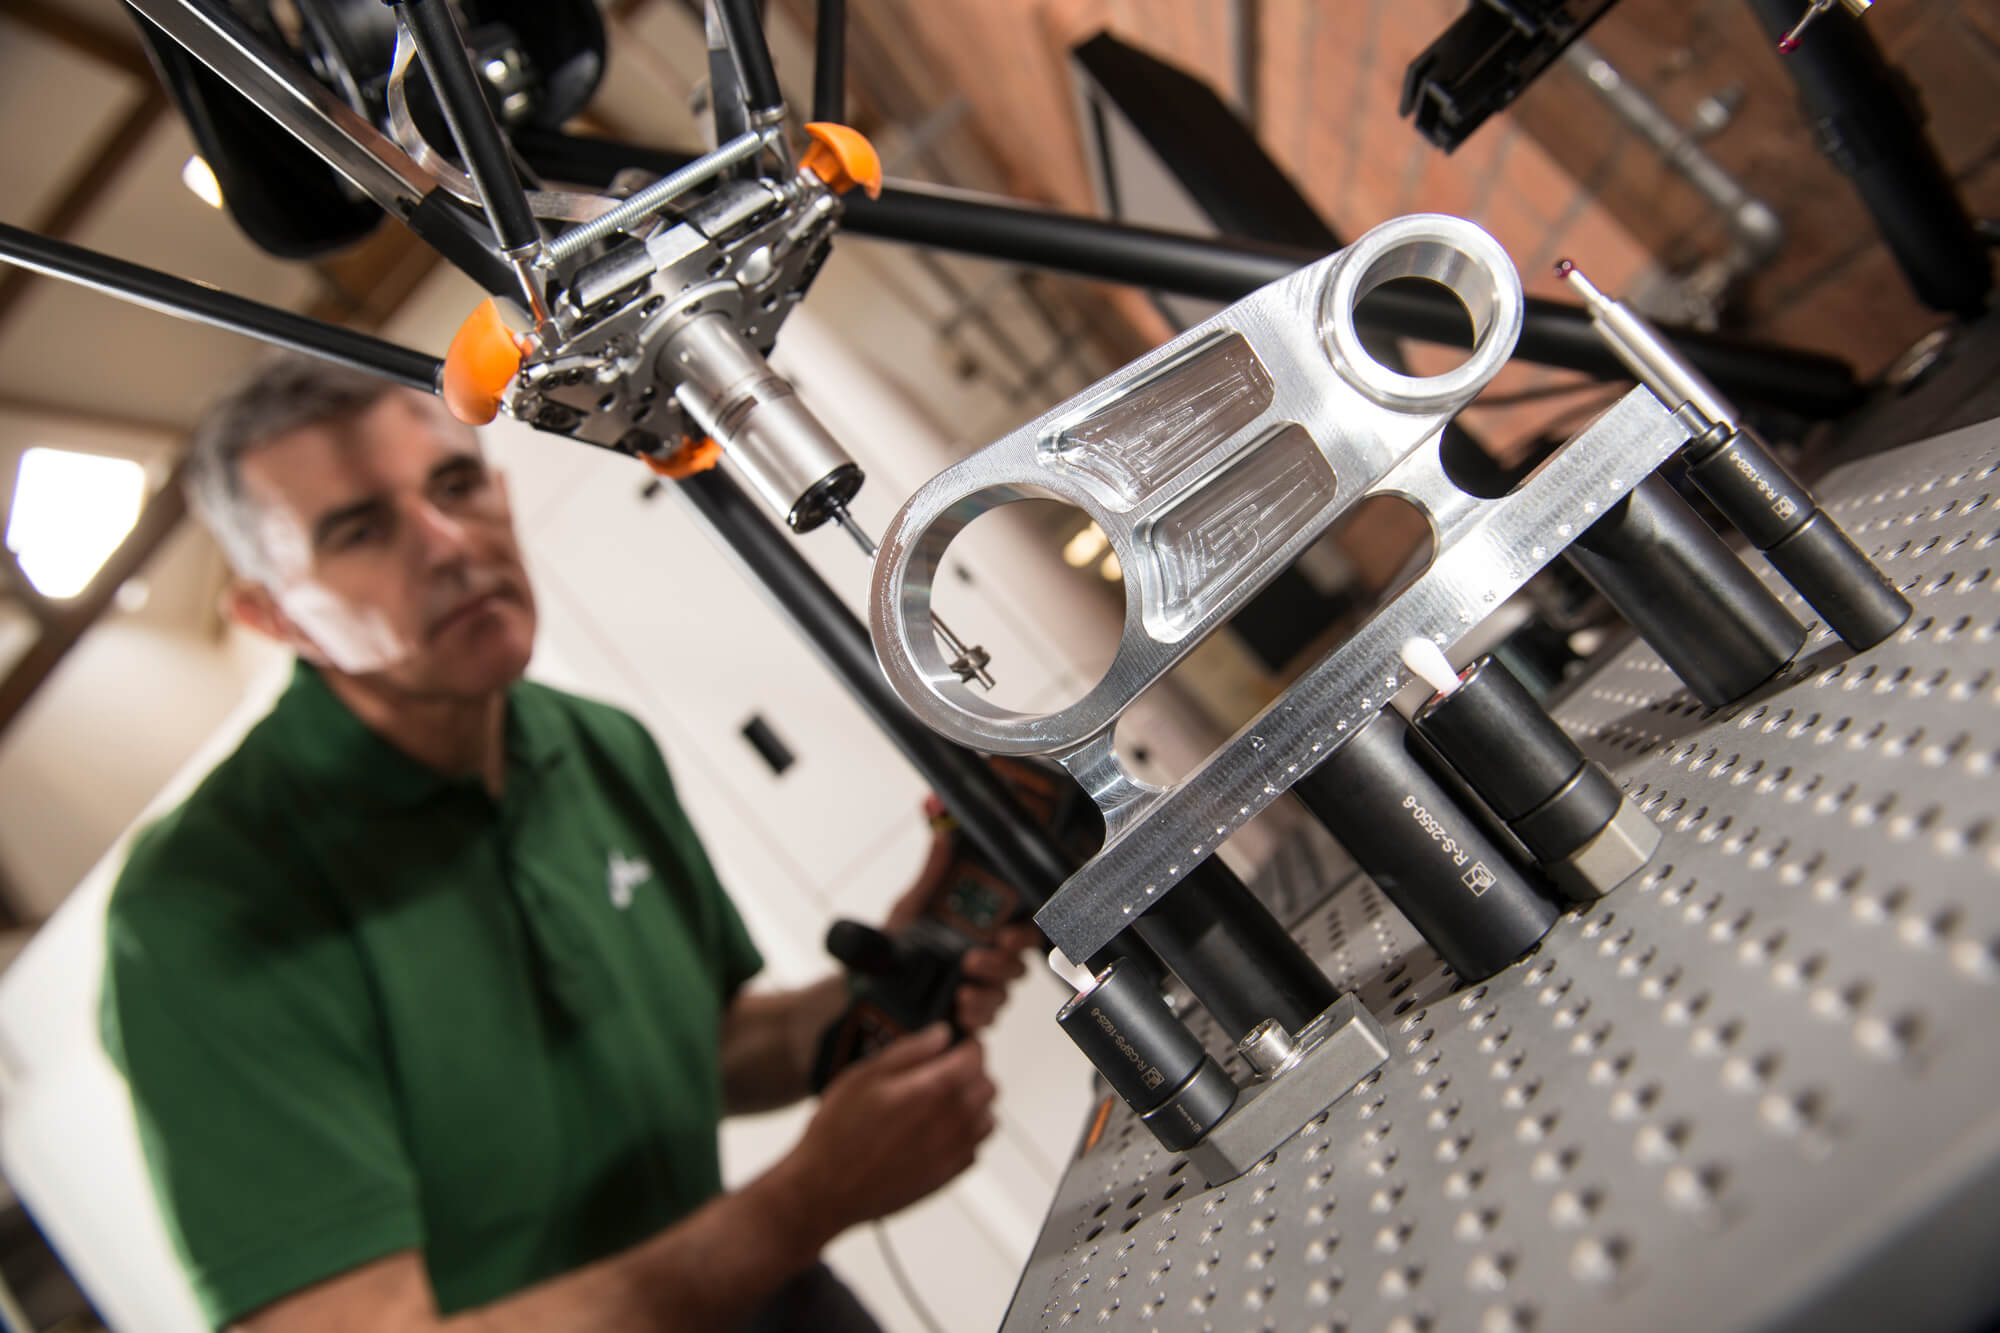 Man working on machinery in the Institute for Innovation in Sustainable Engineering